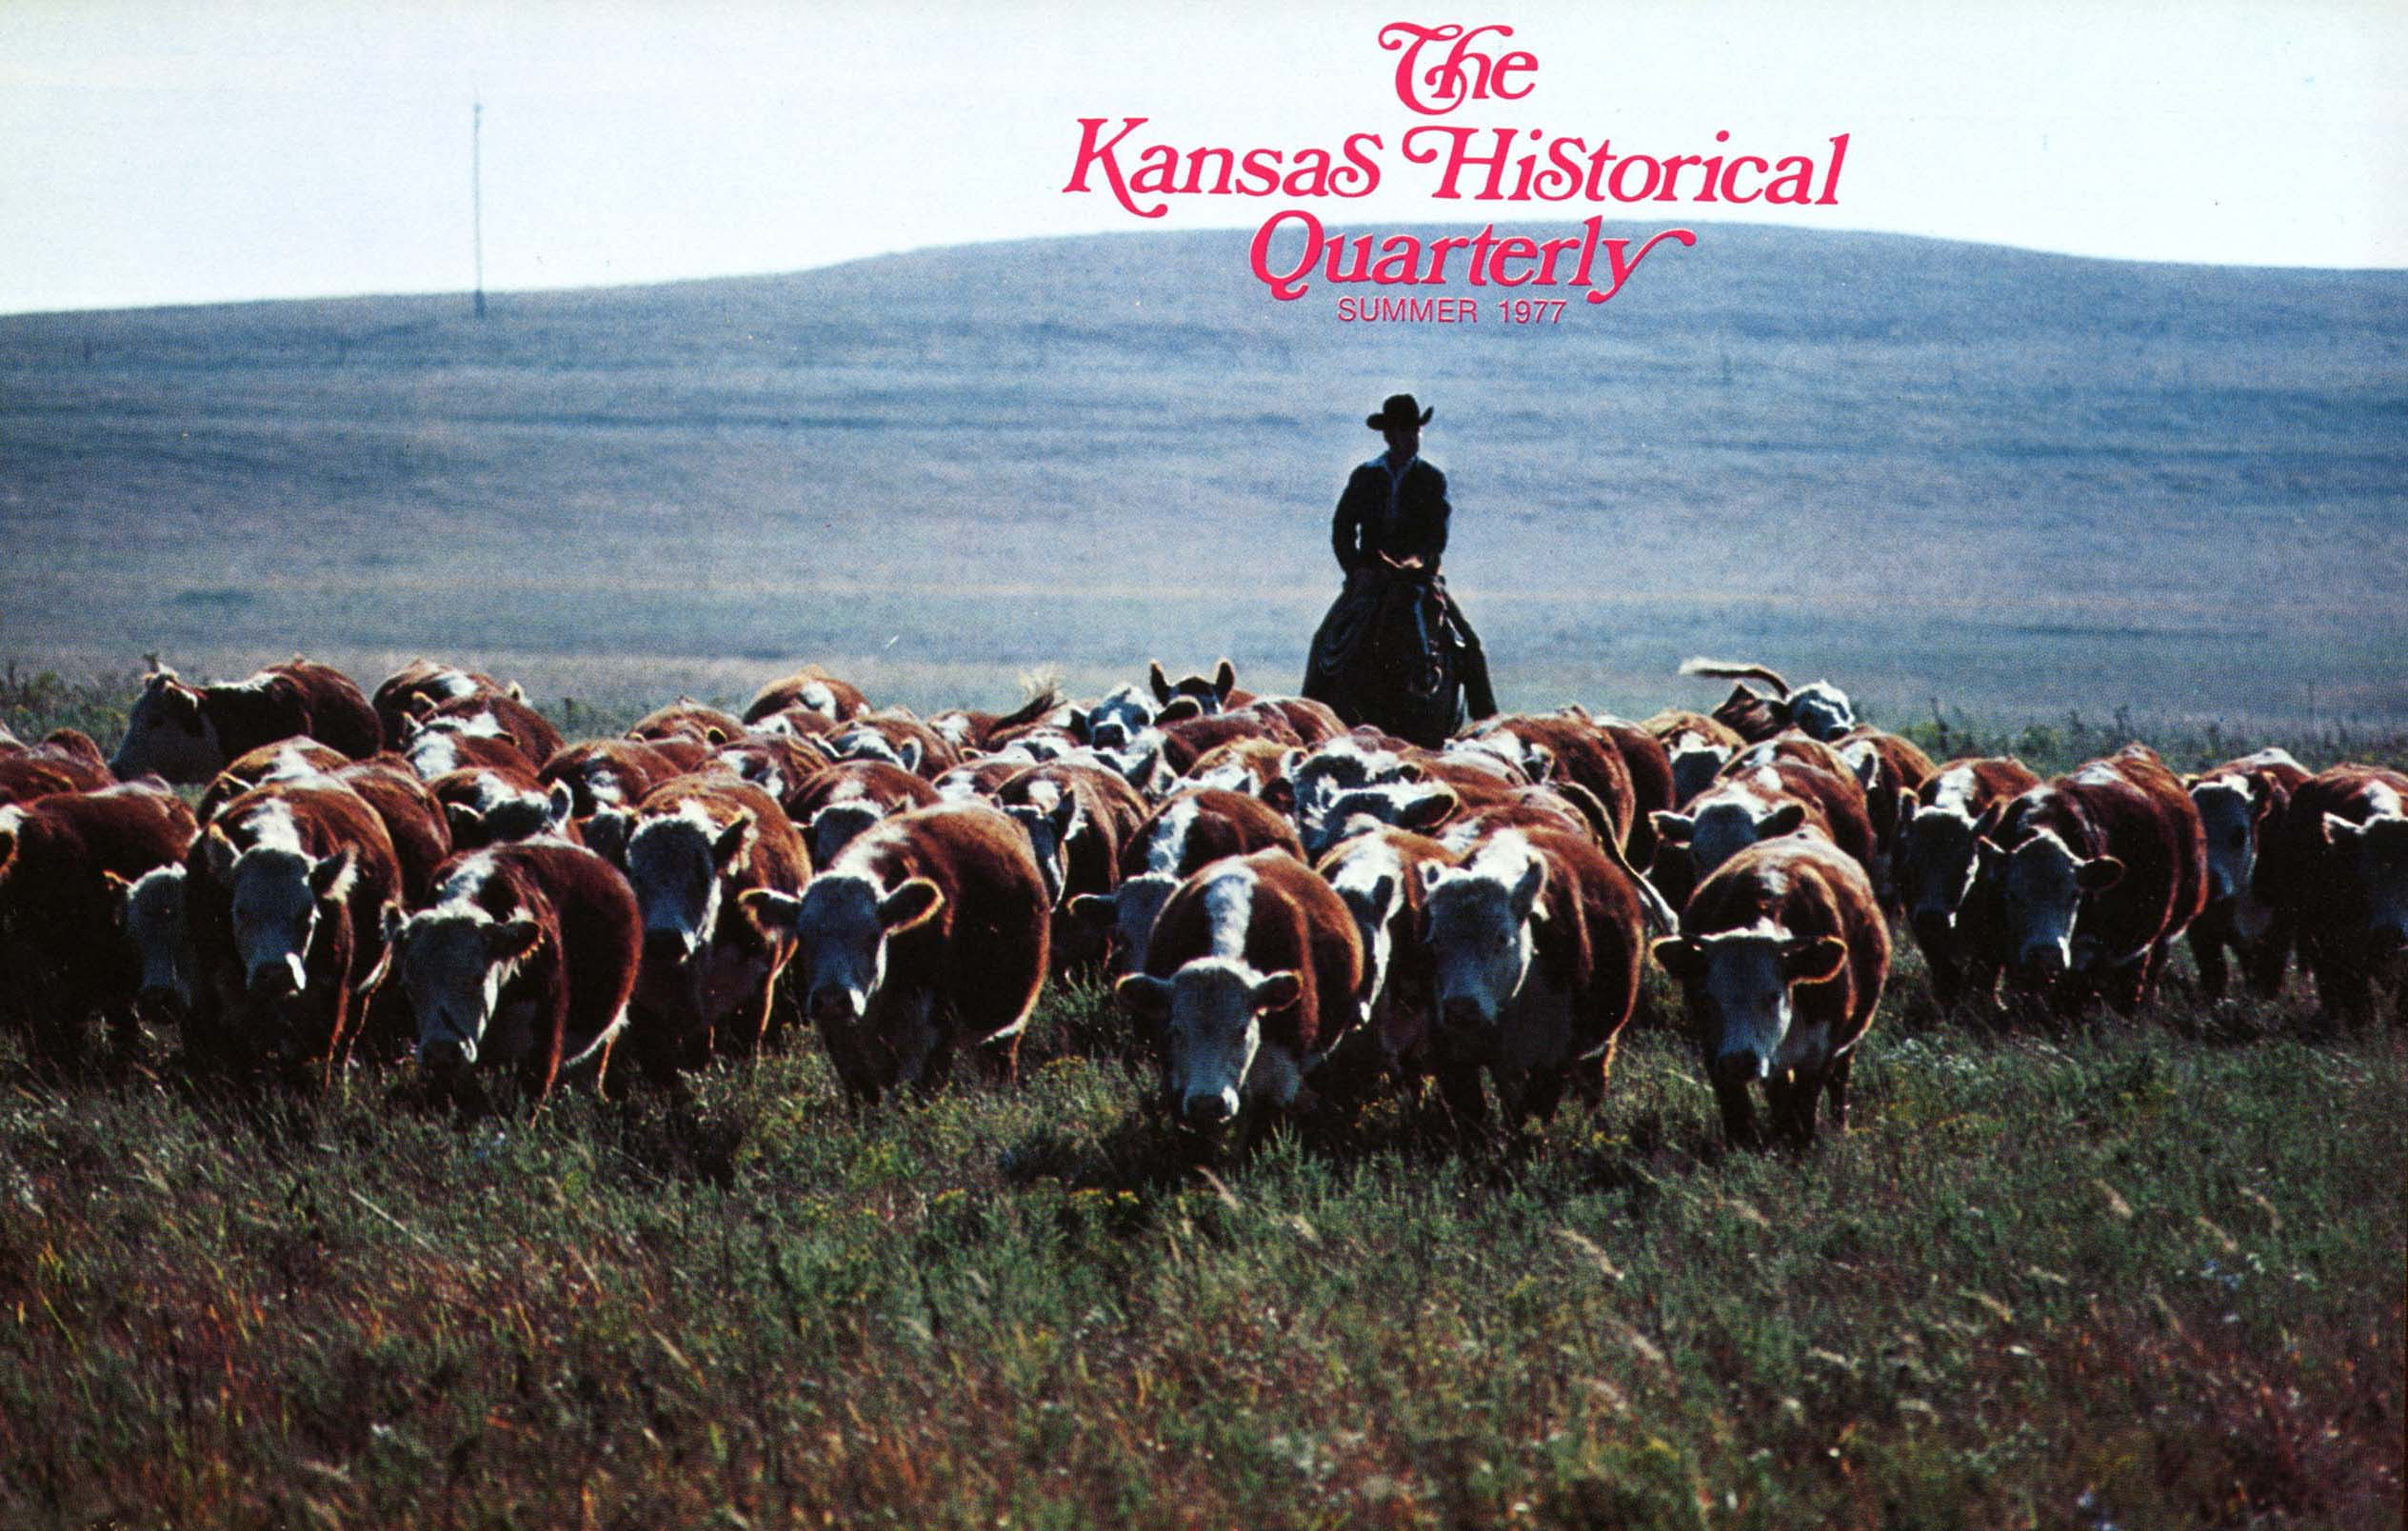 Kansas Historical Quarterly, Summer 1977